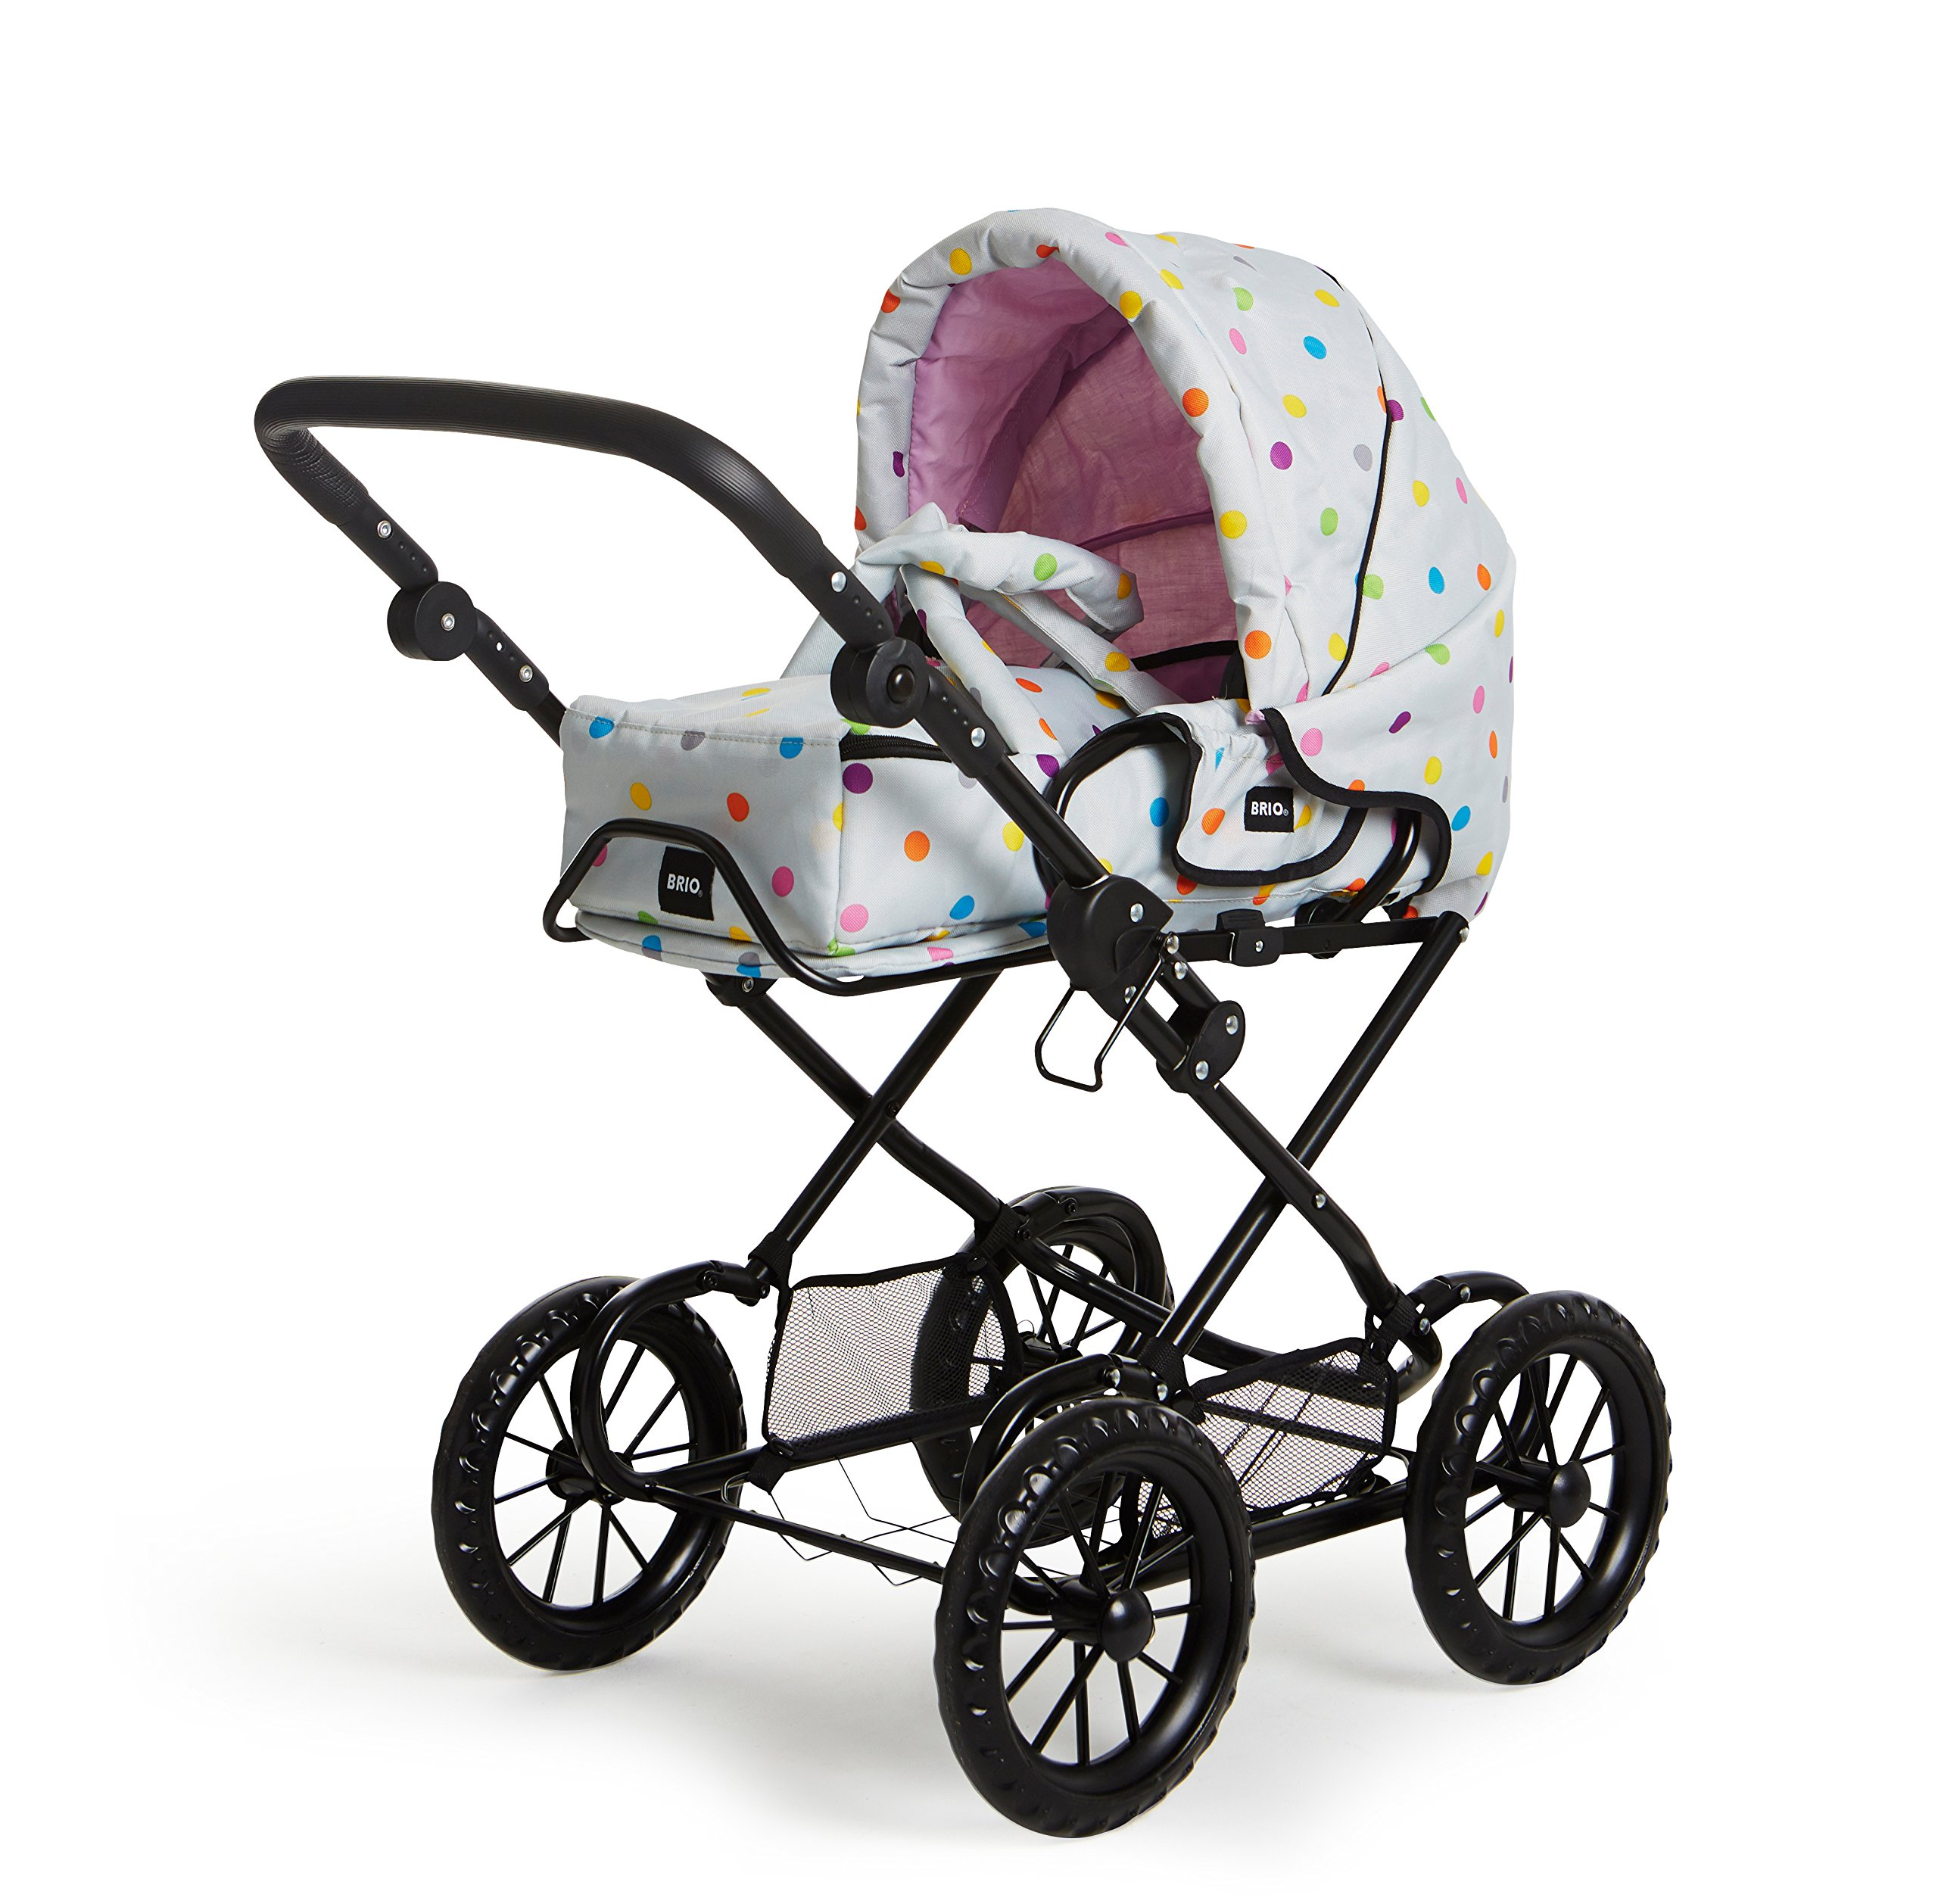 POPPENWAGEN COMBI GRIJS MET ST Ravensburger Combi Doll's Pram in a new design with multi-coloured dots With removable carry bag With adjustable push handle from 44to 79cm 1